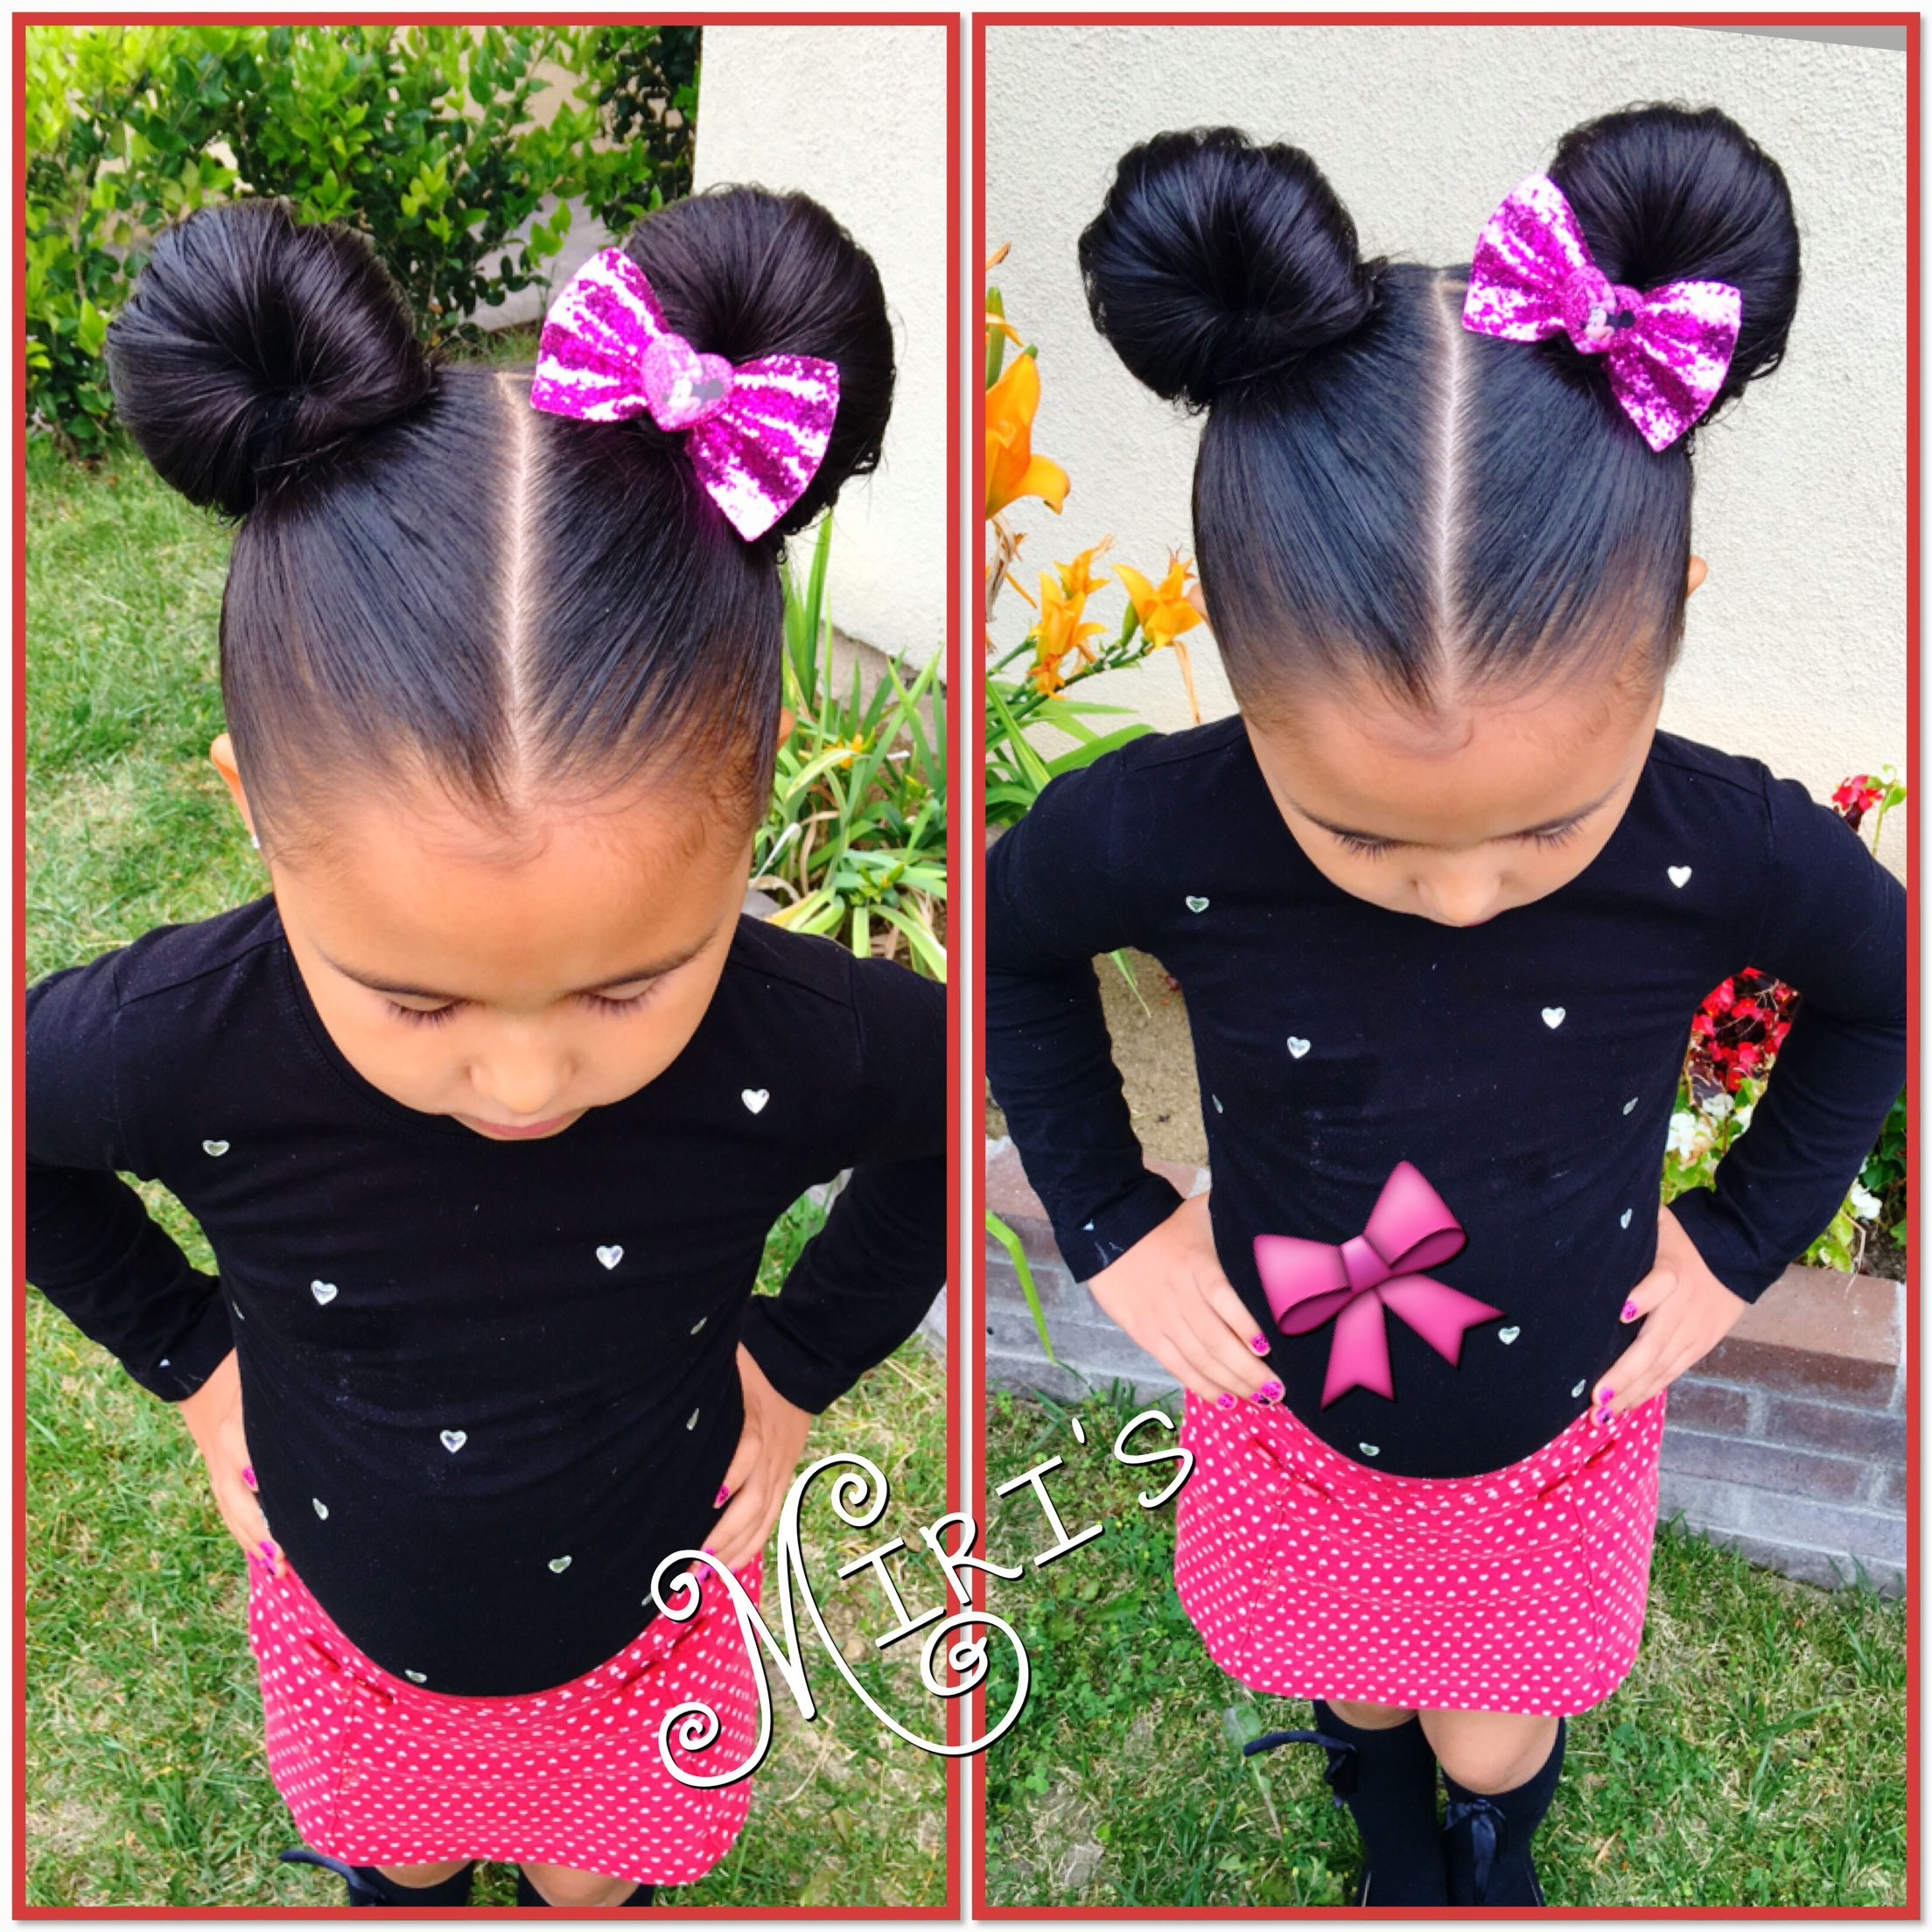 minnie mouse ears hair style for little girls | natural hair style